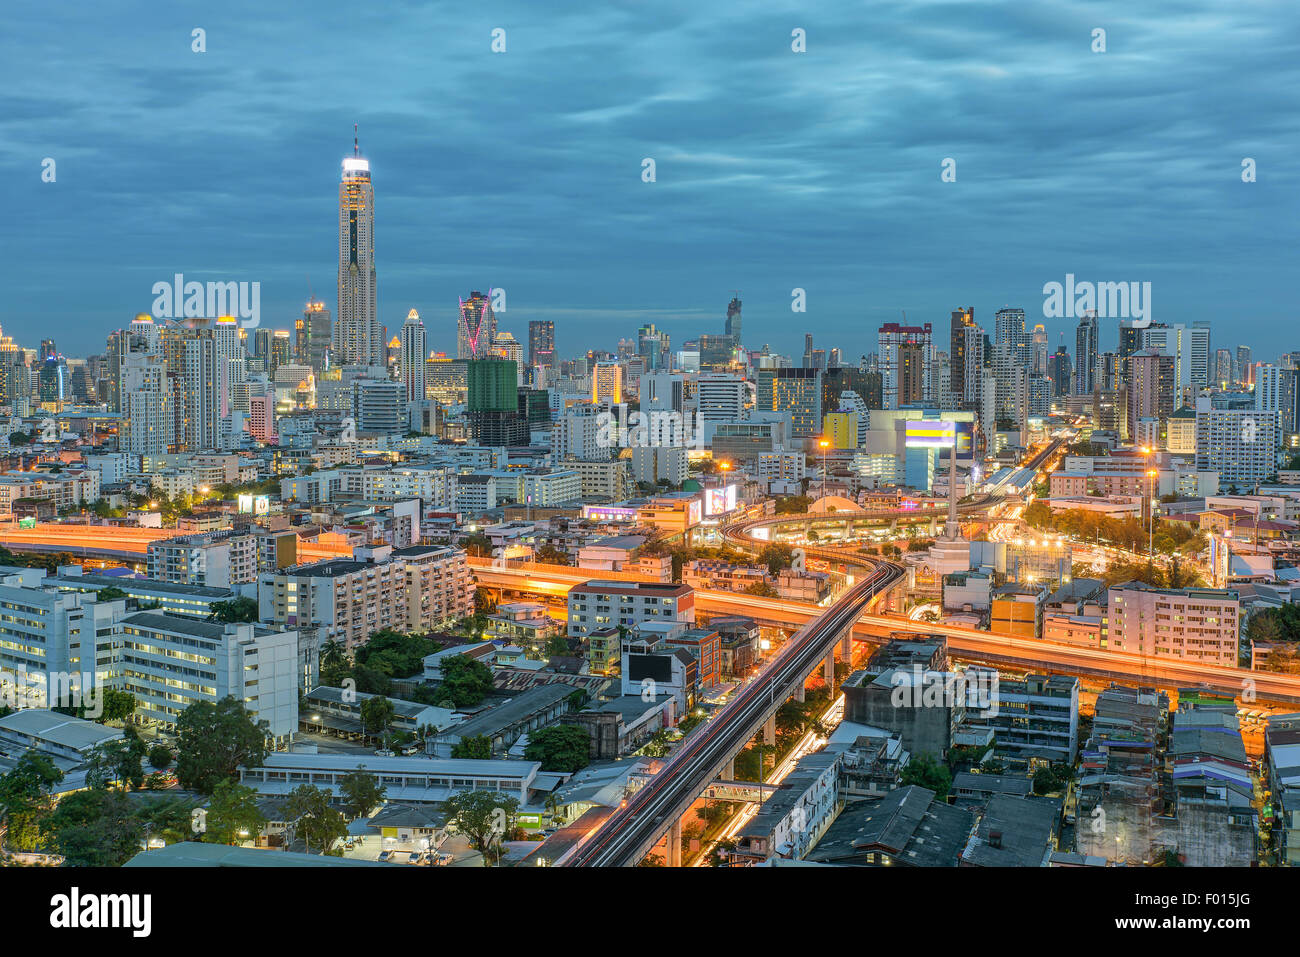 Bangkok city in night view with nice sky, Thailand - Stock Image